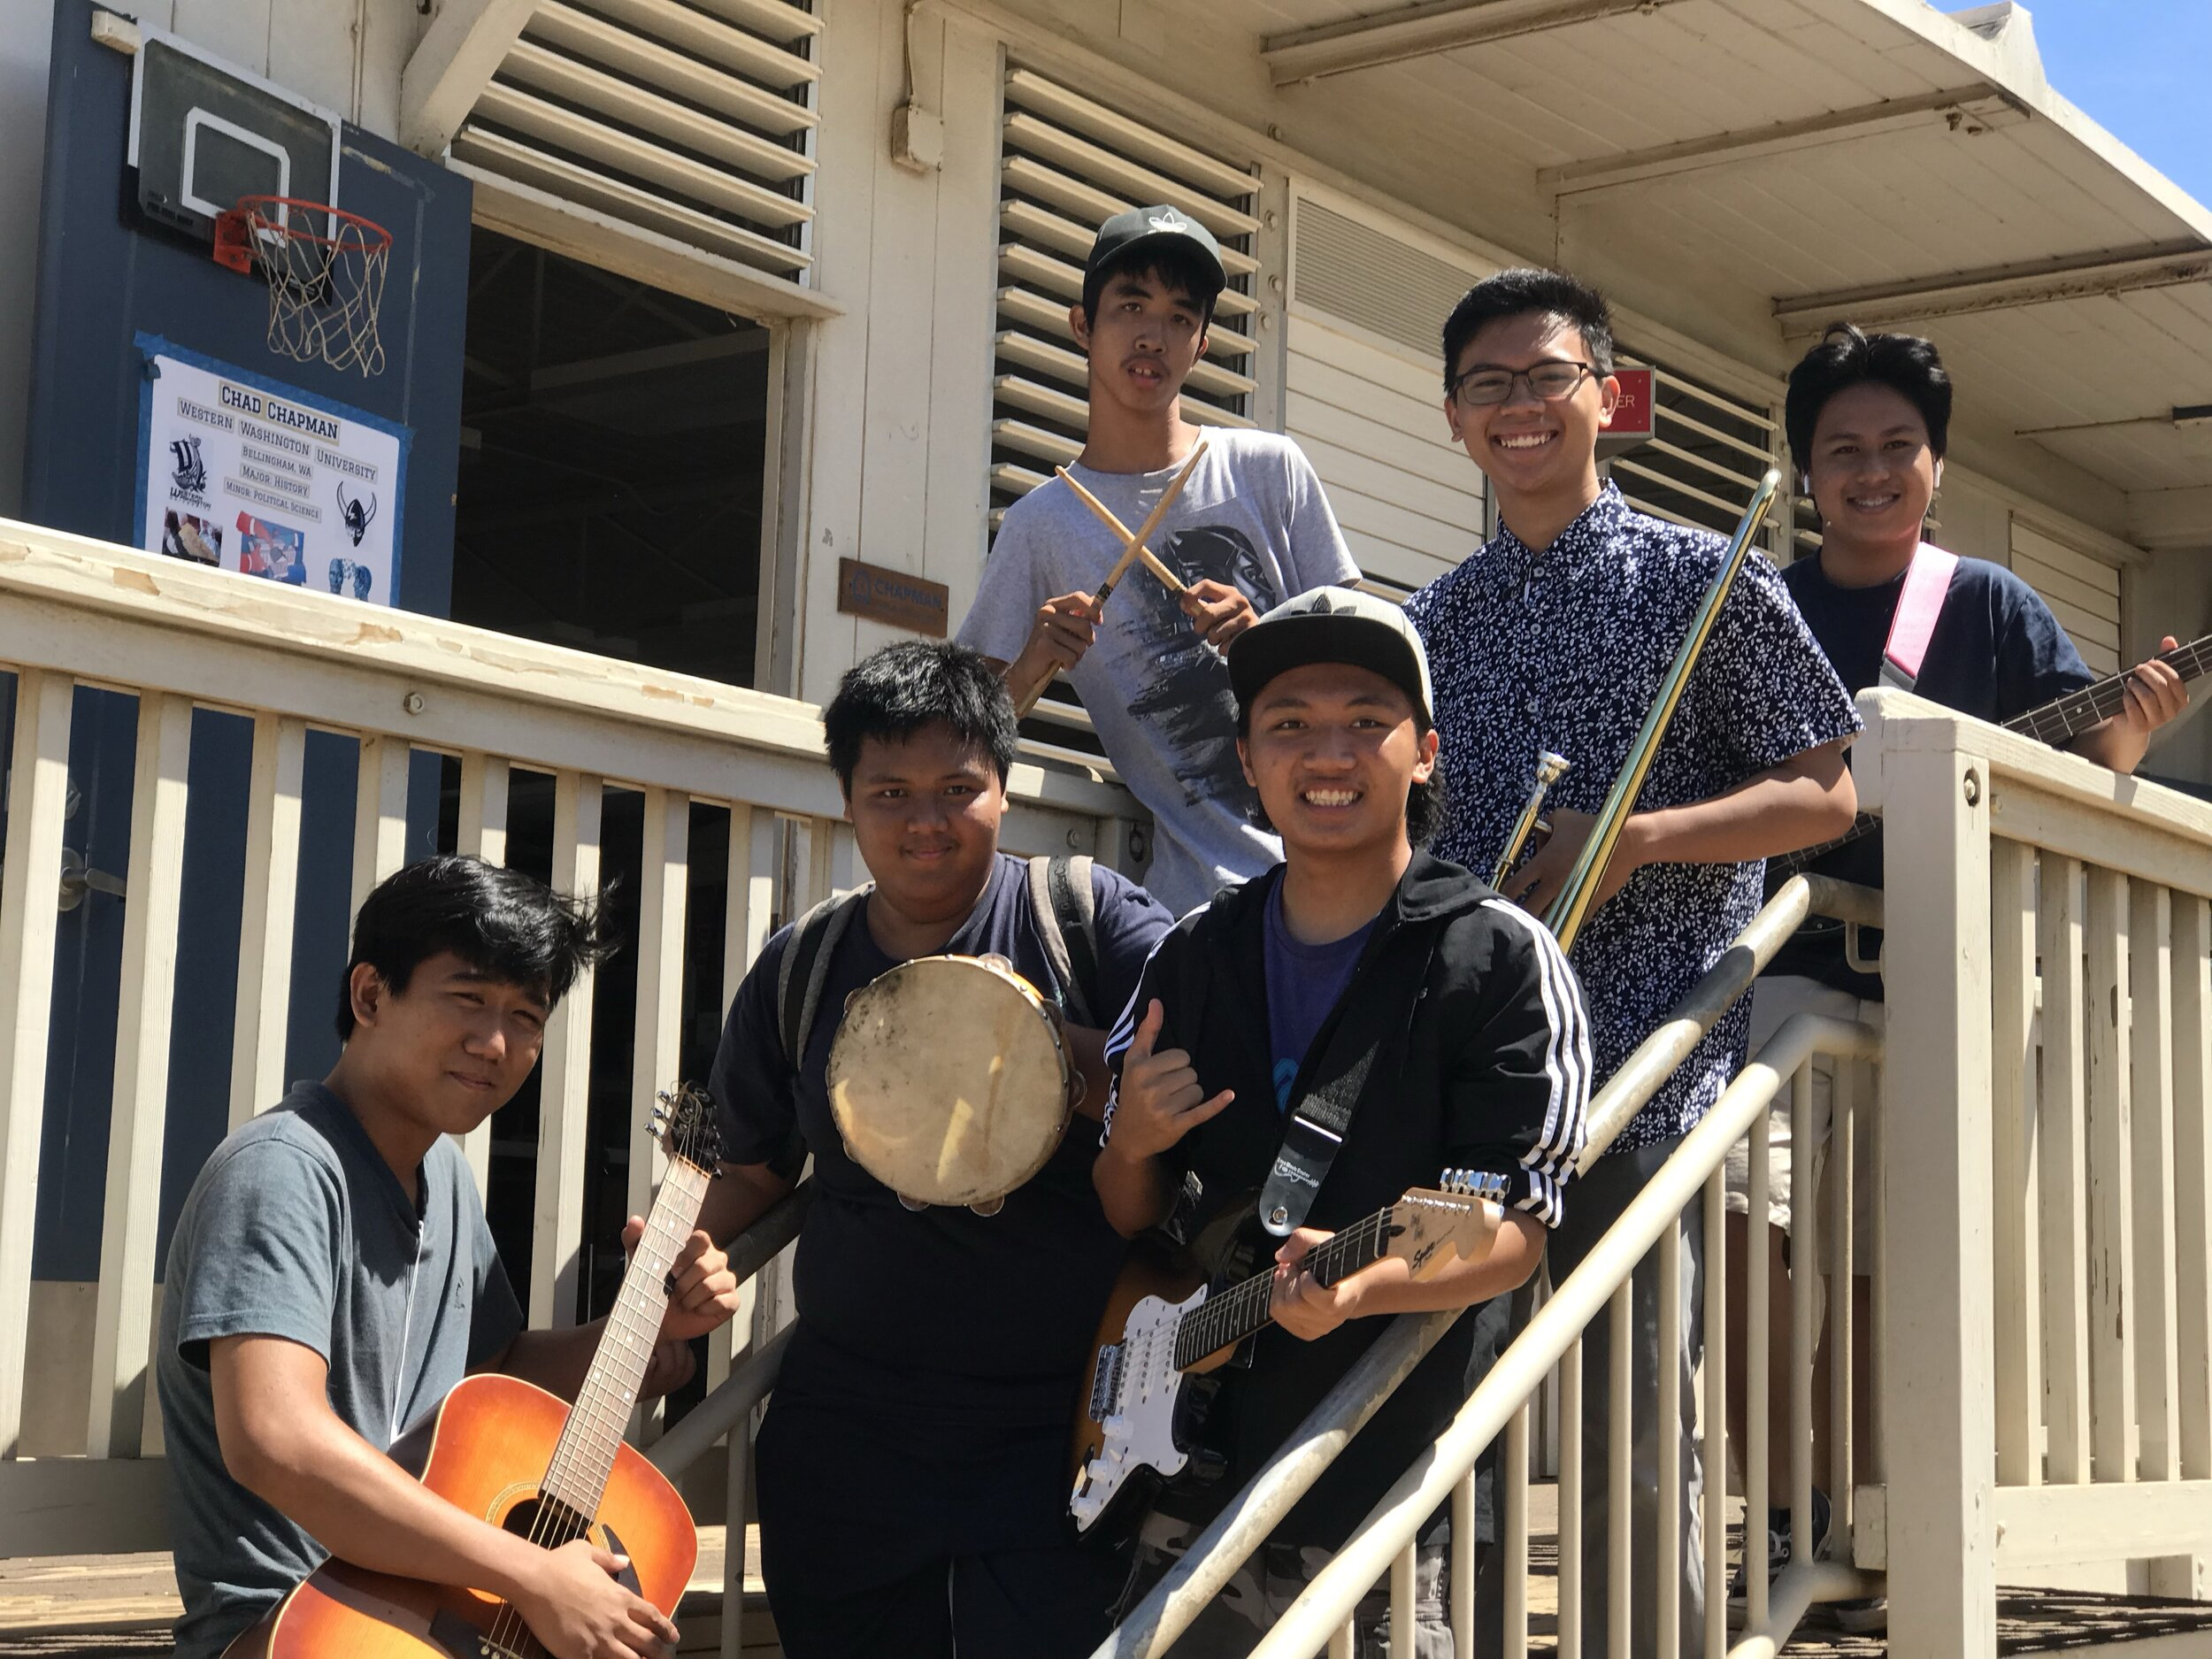 Maui High School's Music Club will perform September 22nd.